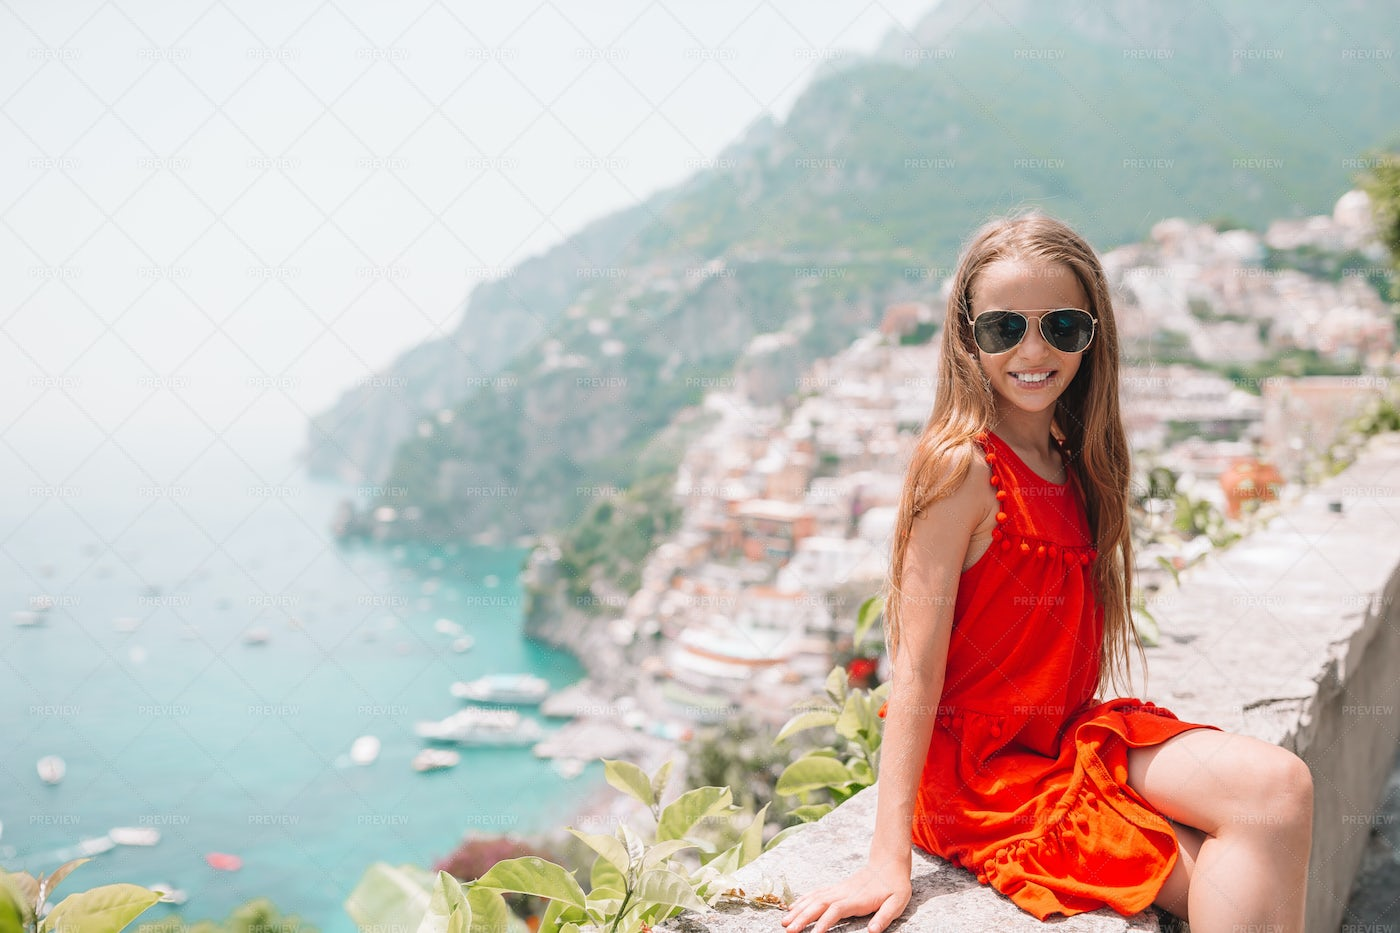 Girl With Picturesque Town At The Back: Stock Photos